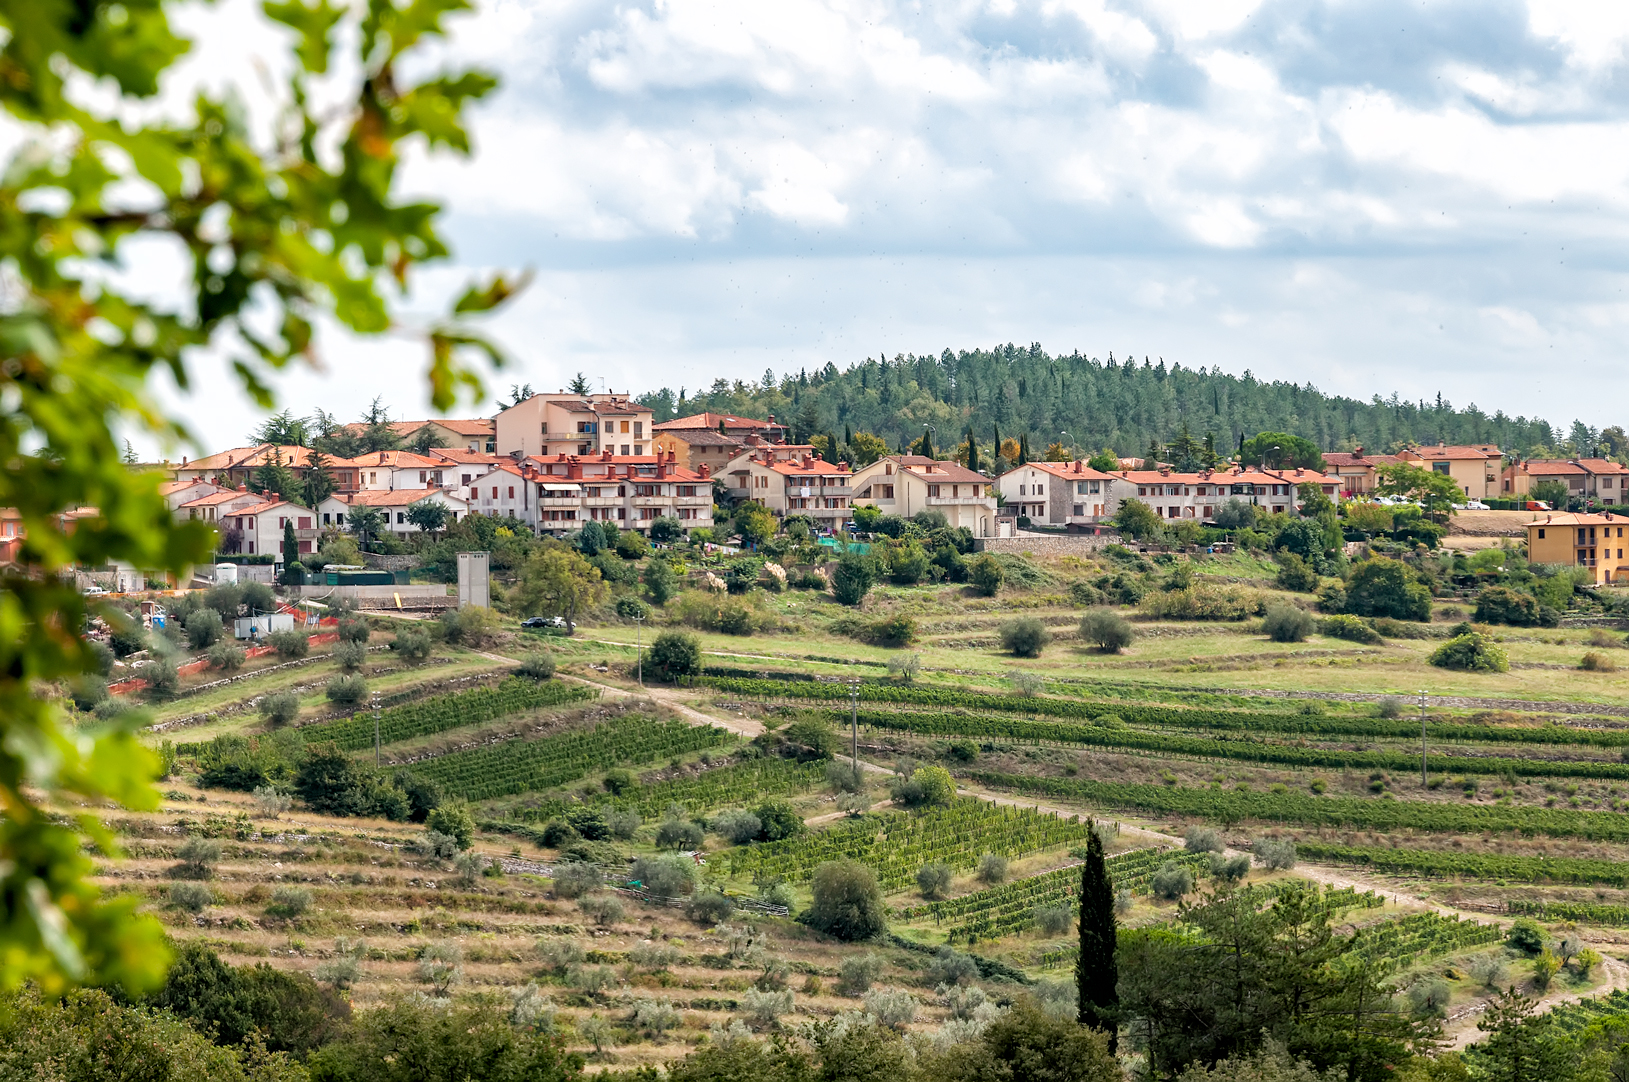 Castellina in Chianti from a distance